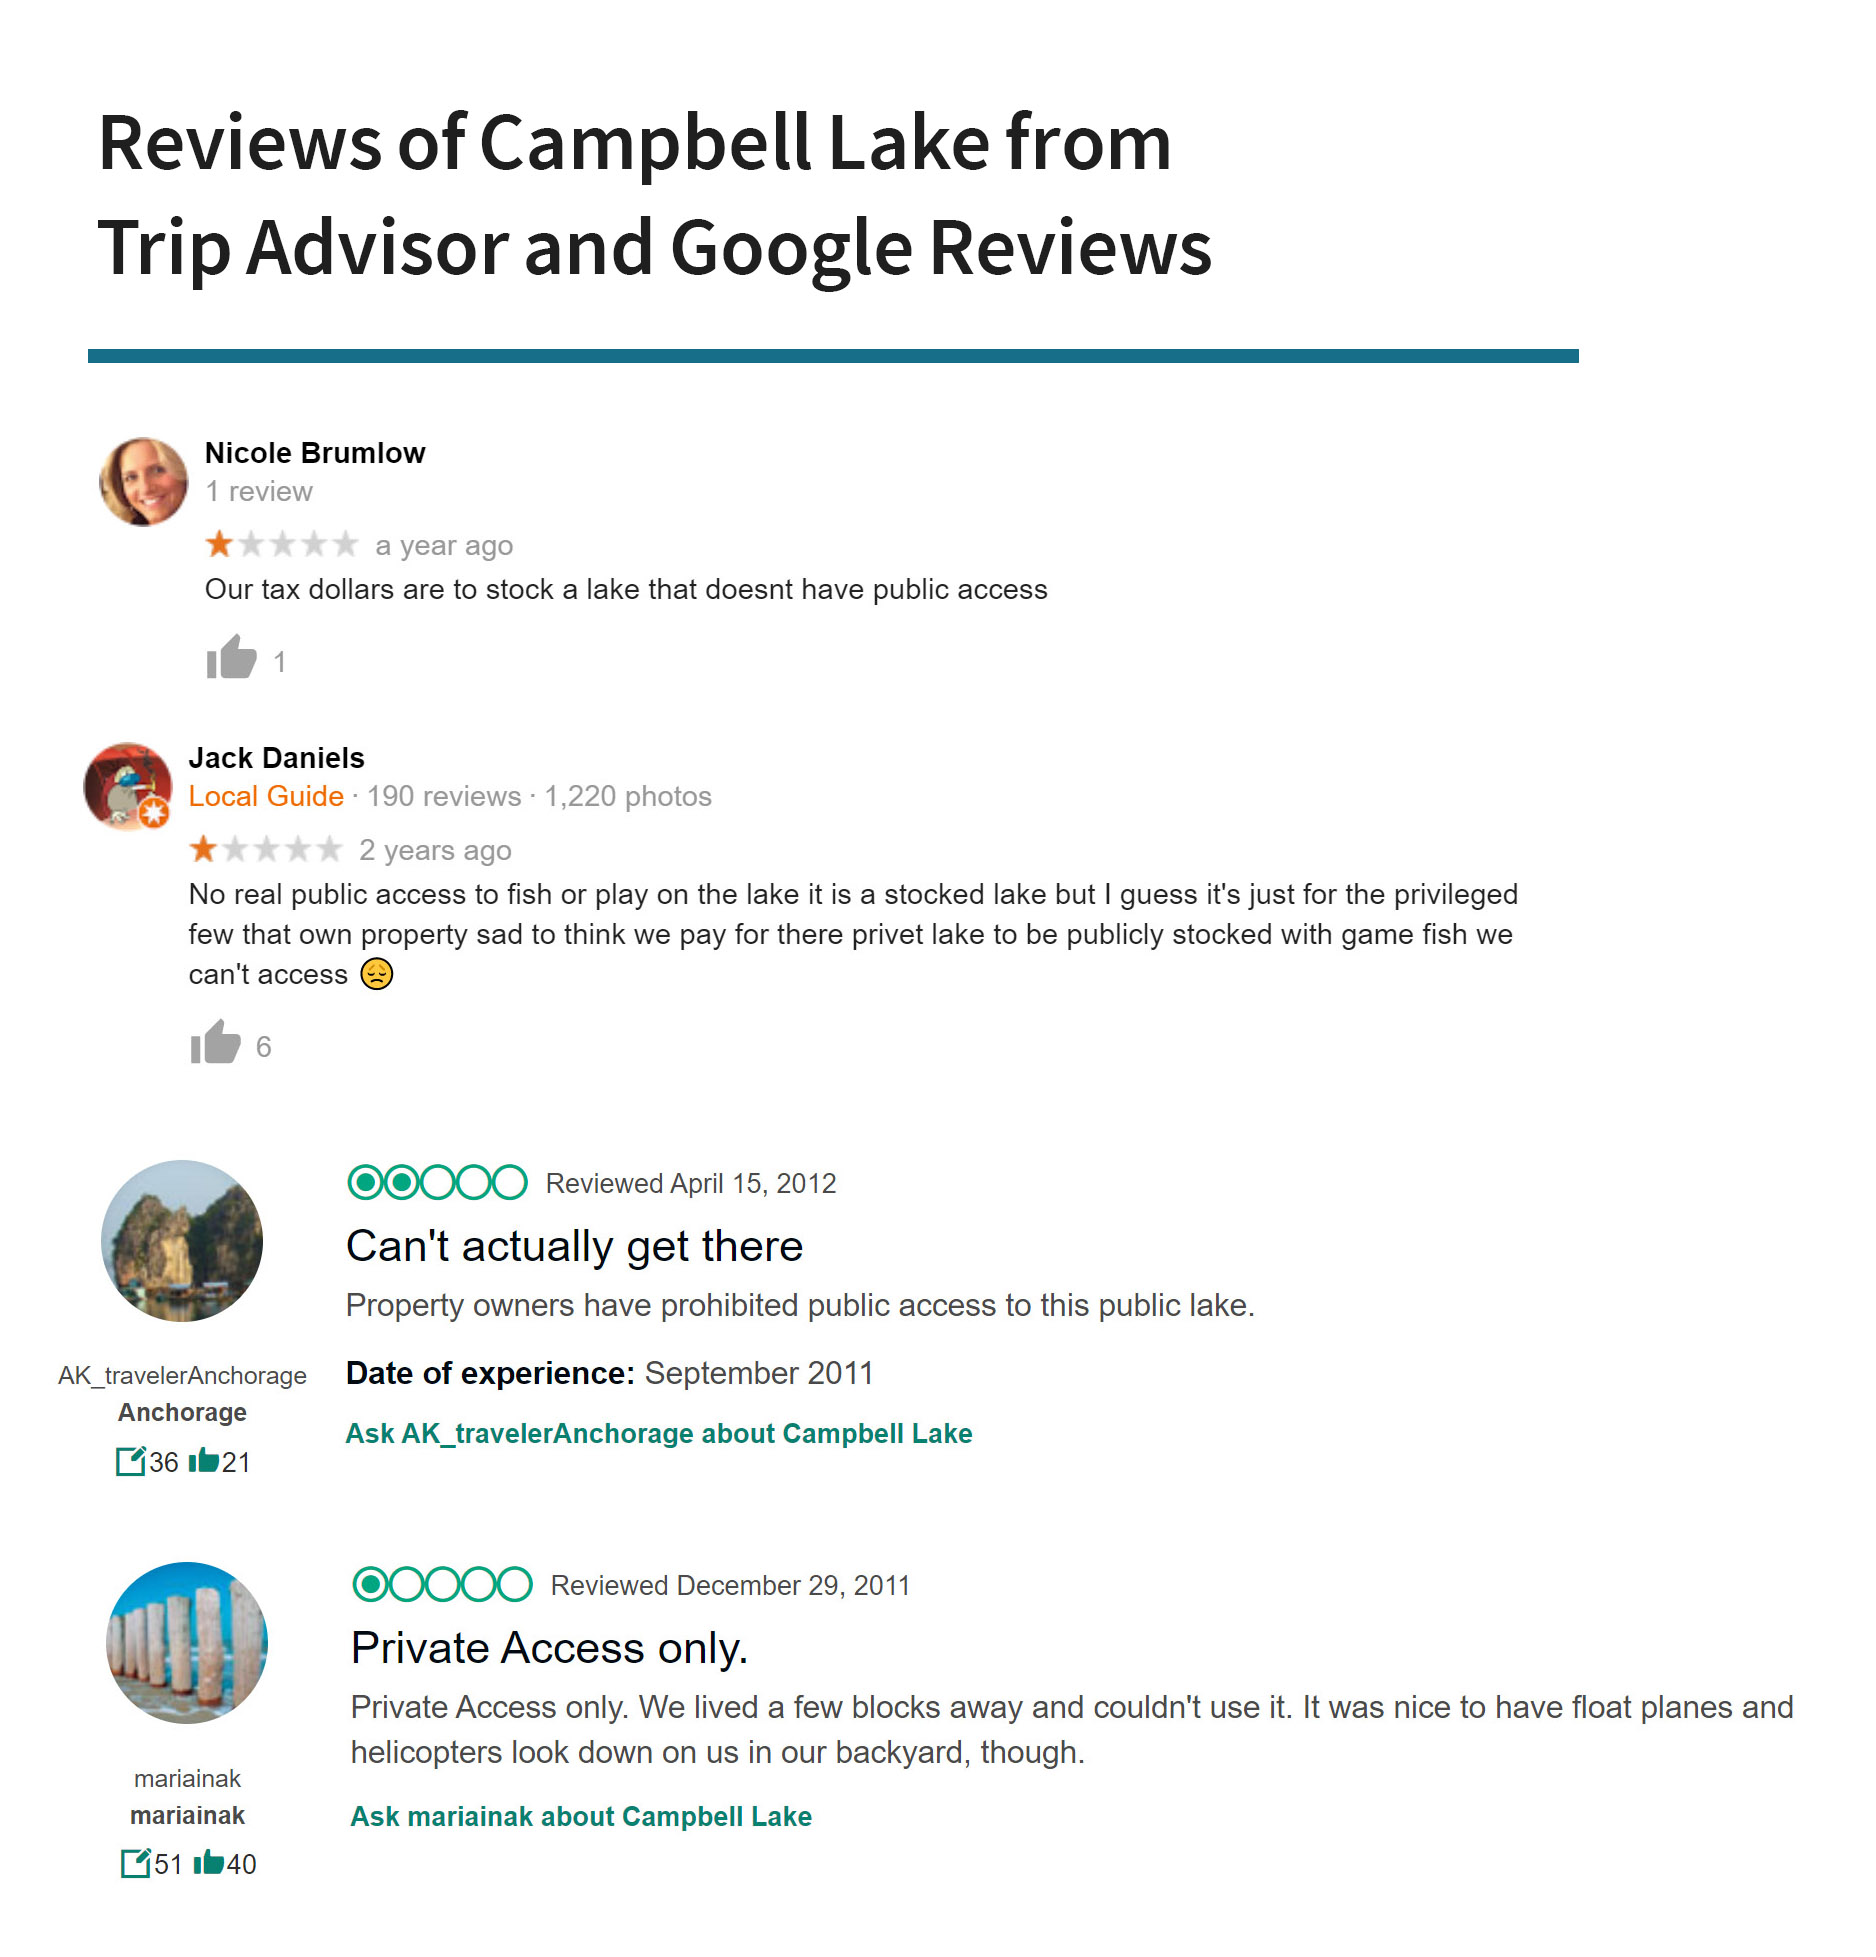 Reviews of Campbell Lake on Trip Advisor and Google Reviews